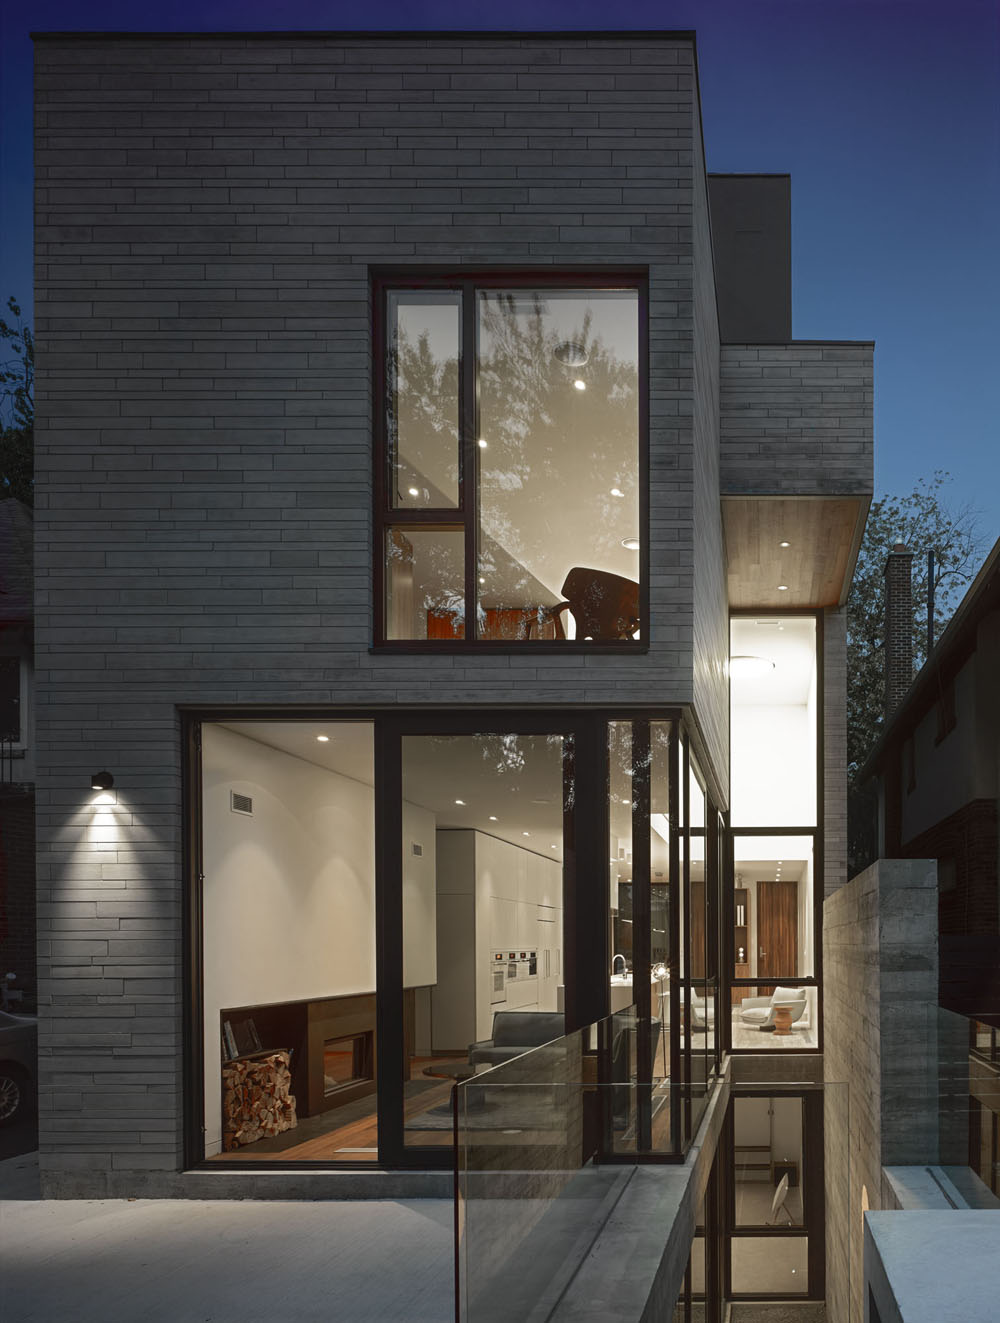 Moore-Park-Residence-by-Drew-Mandel-Architects-11